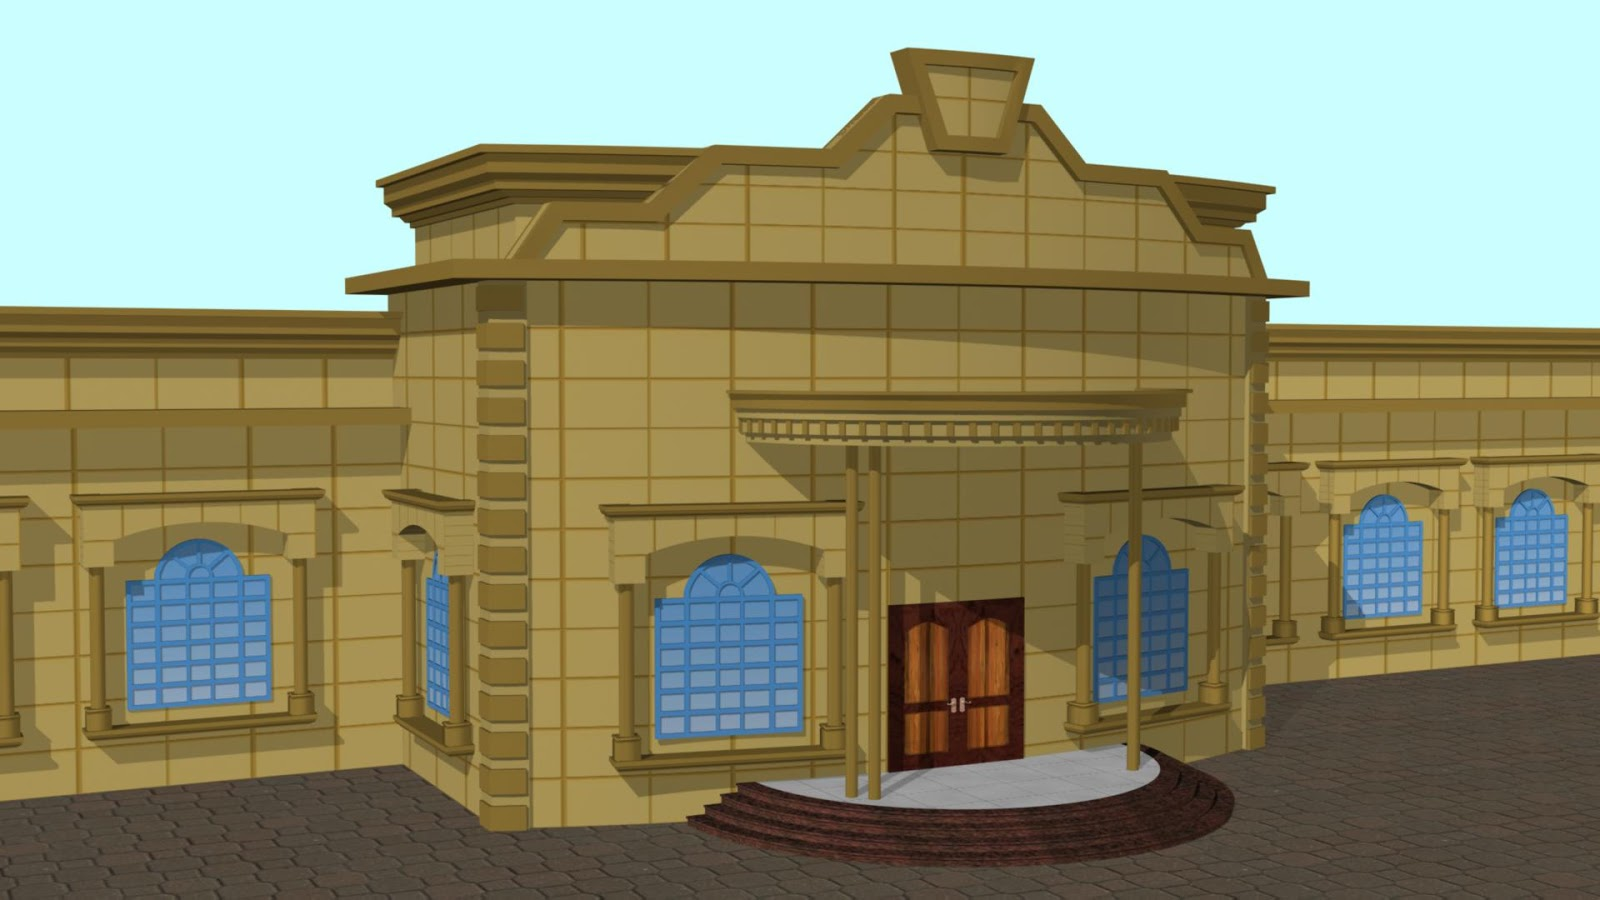 Restaurant Front View Design title=